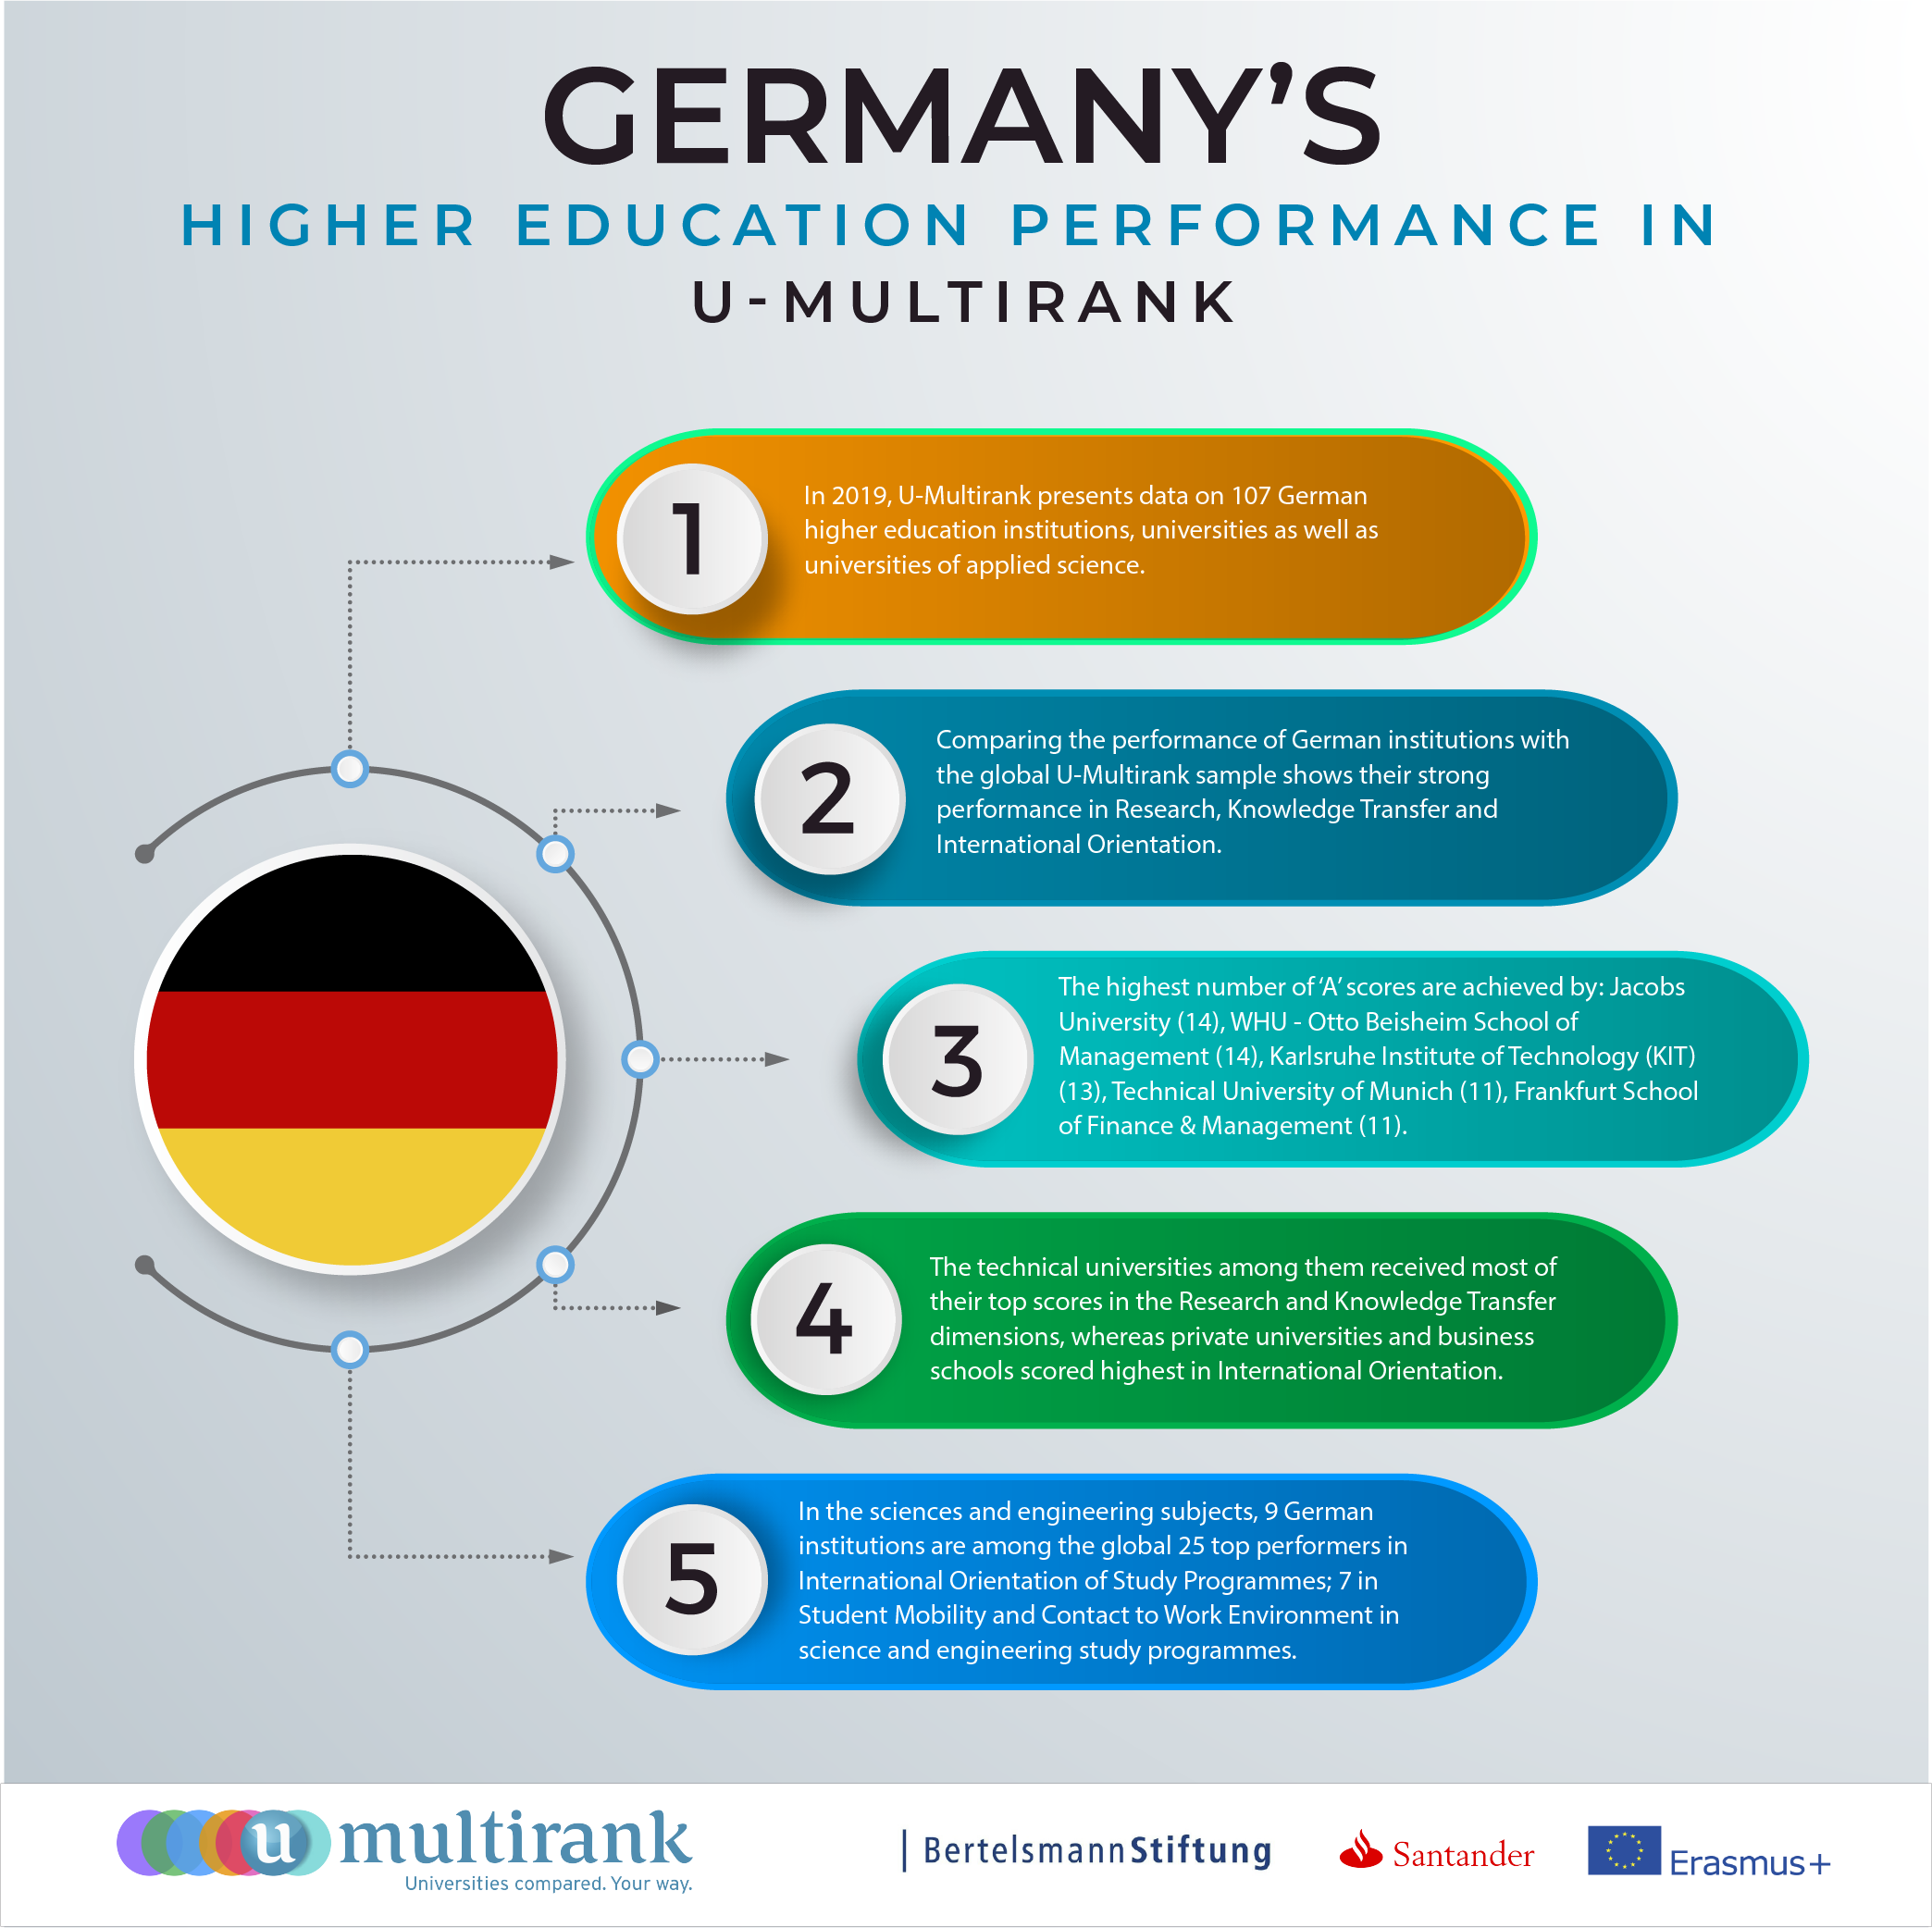 Germany's Higher Education Performance in U-Multirank